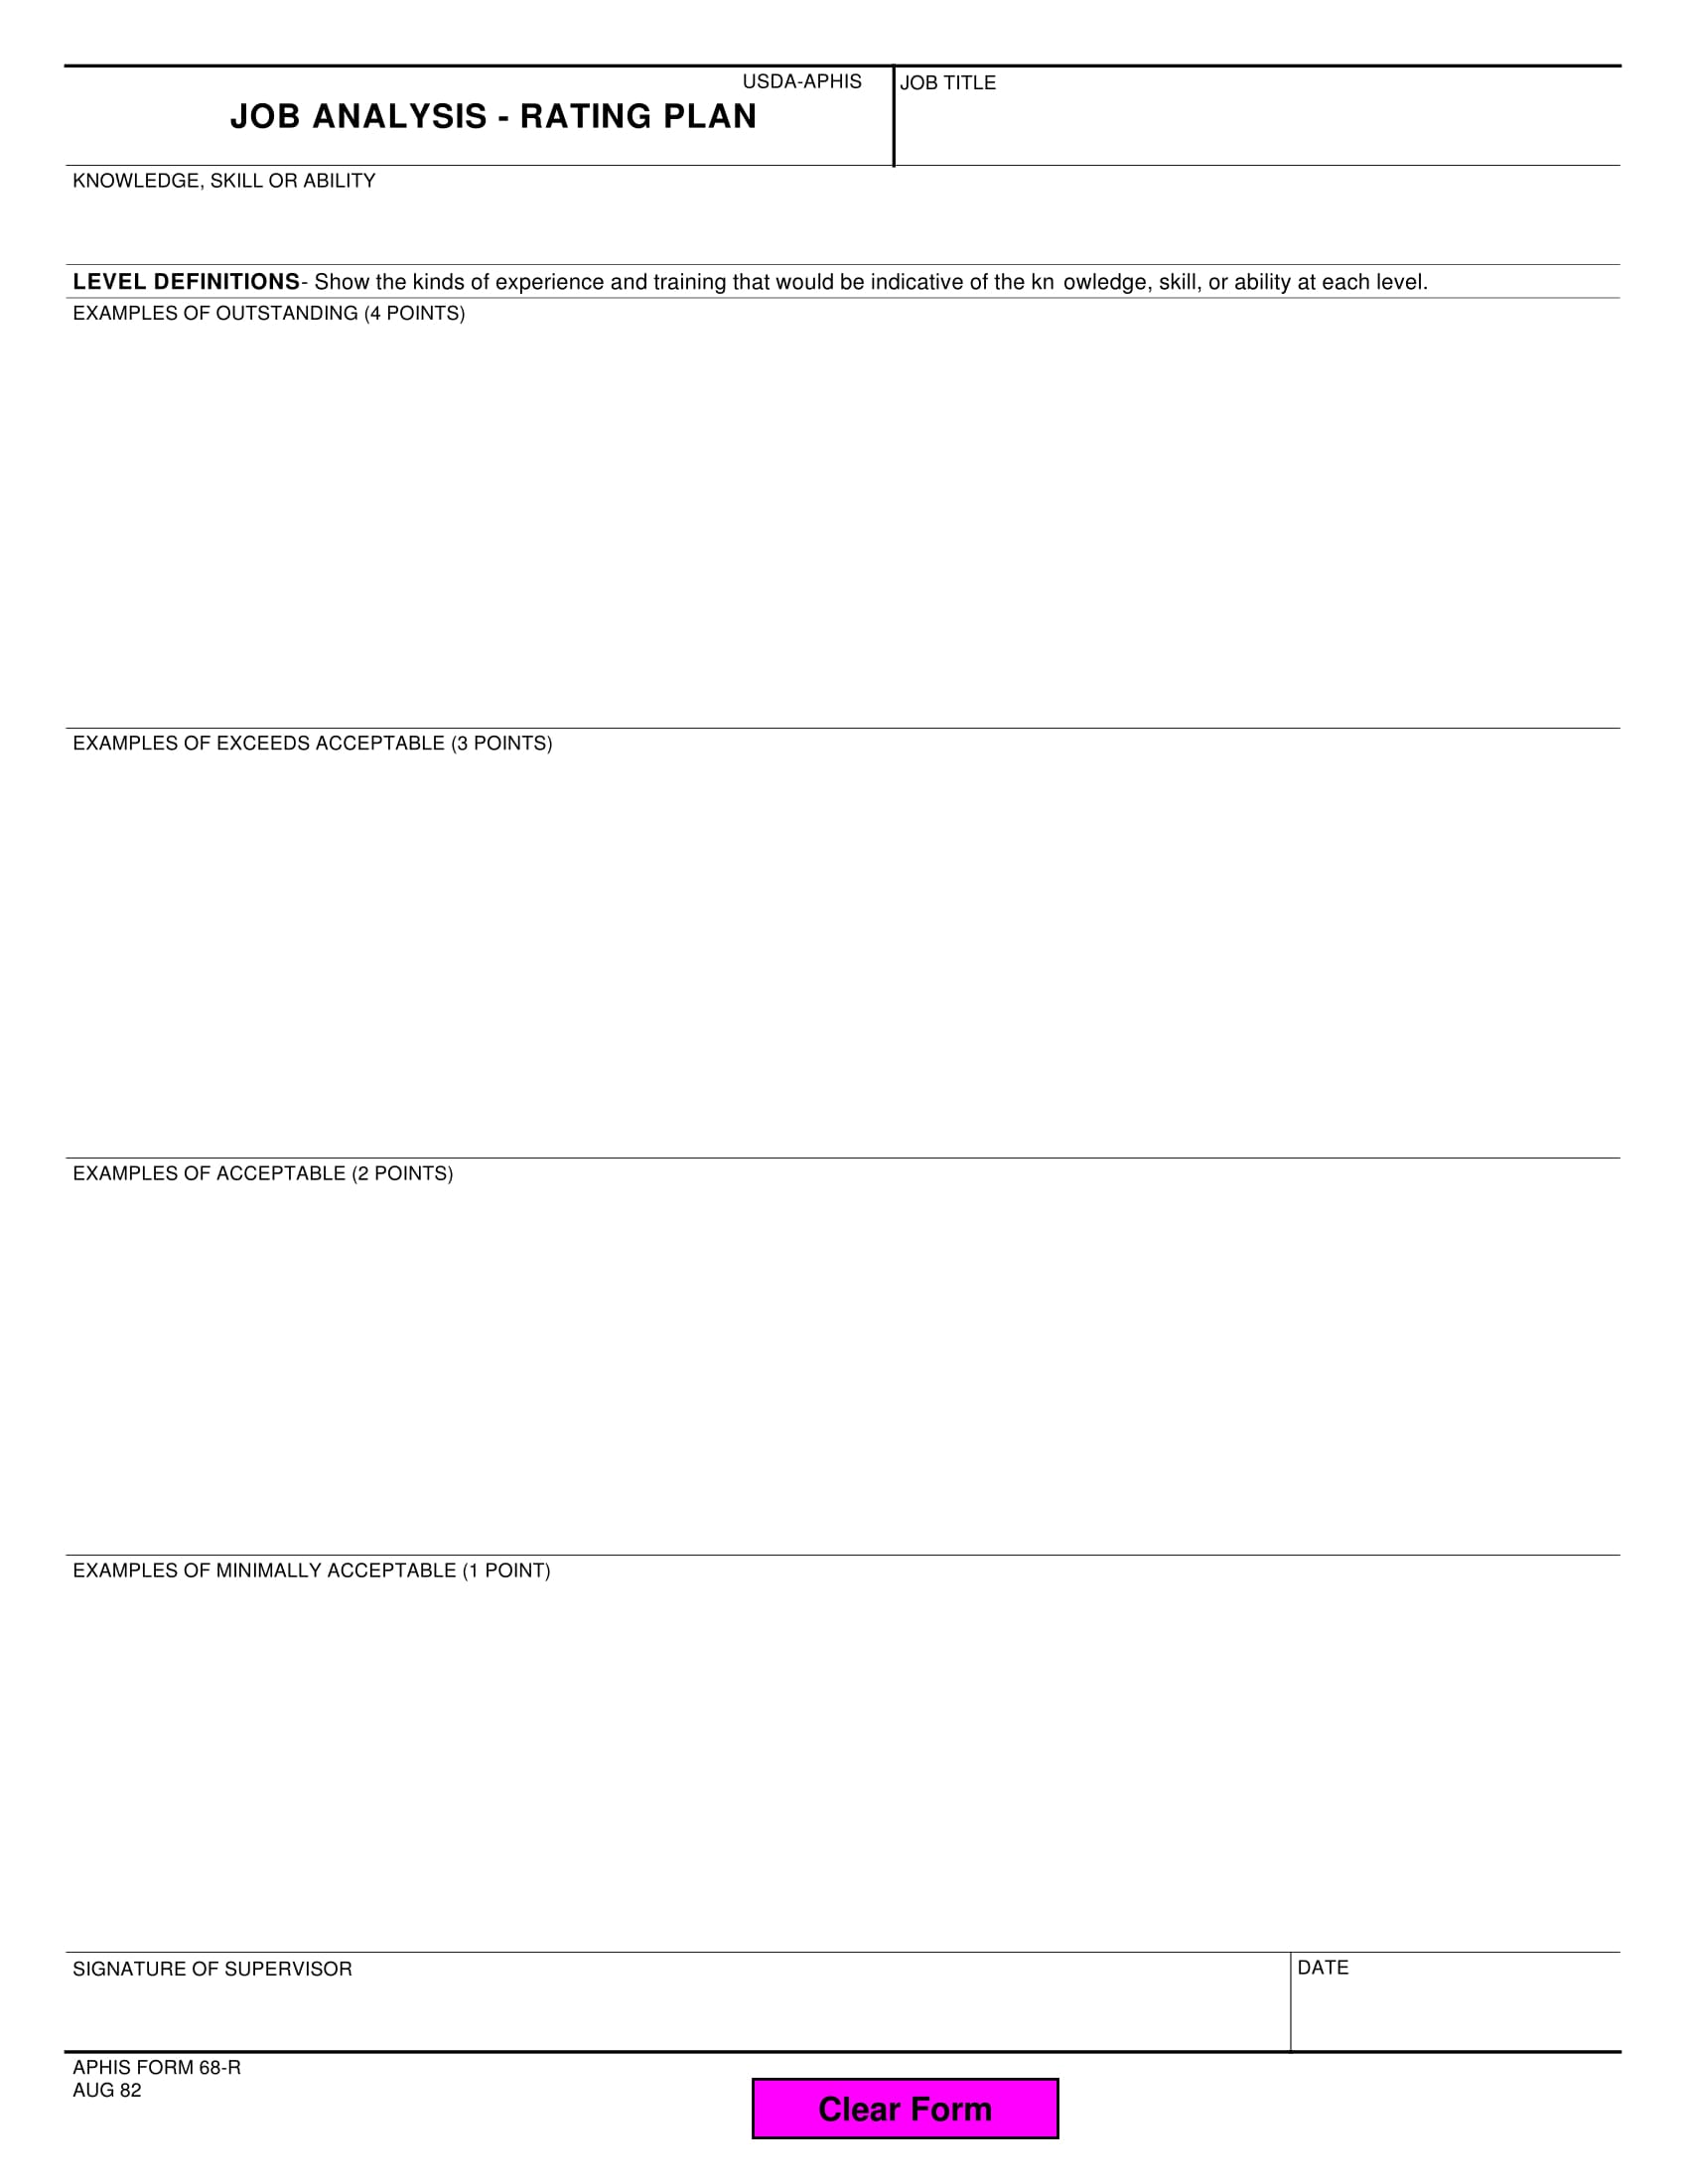 job analysis rating plan form 1